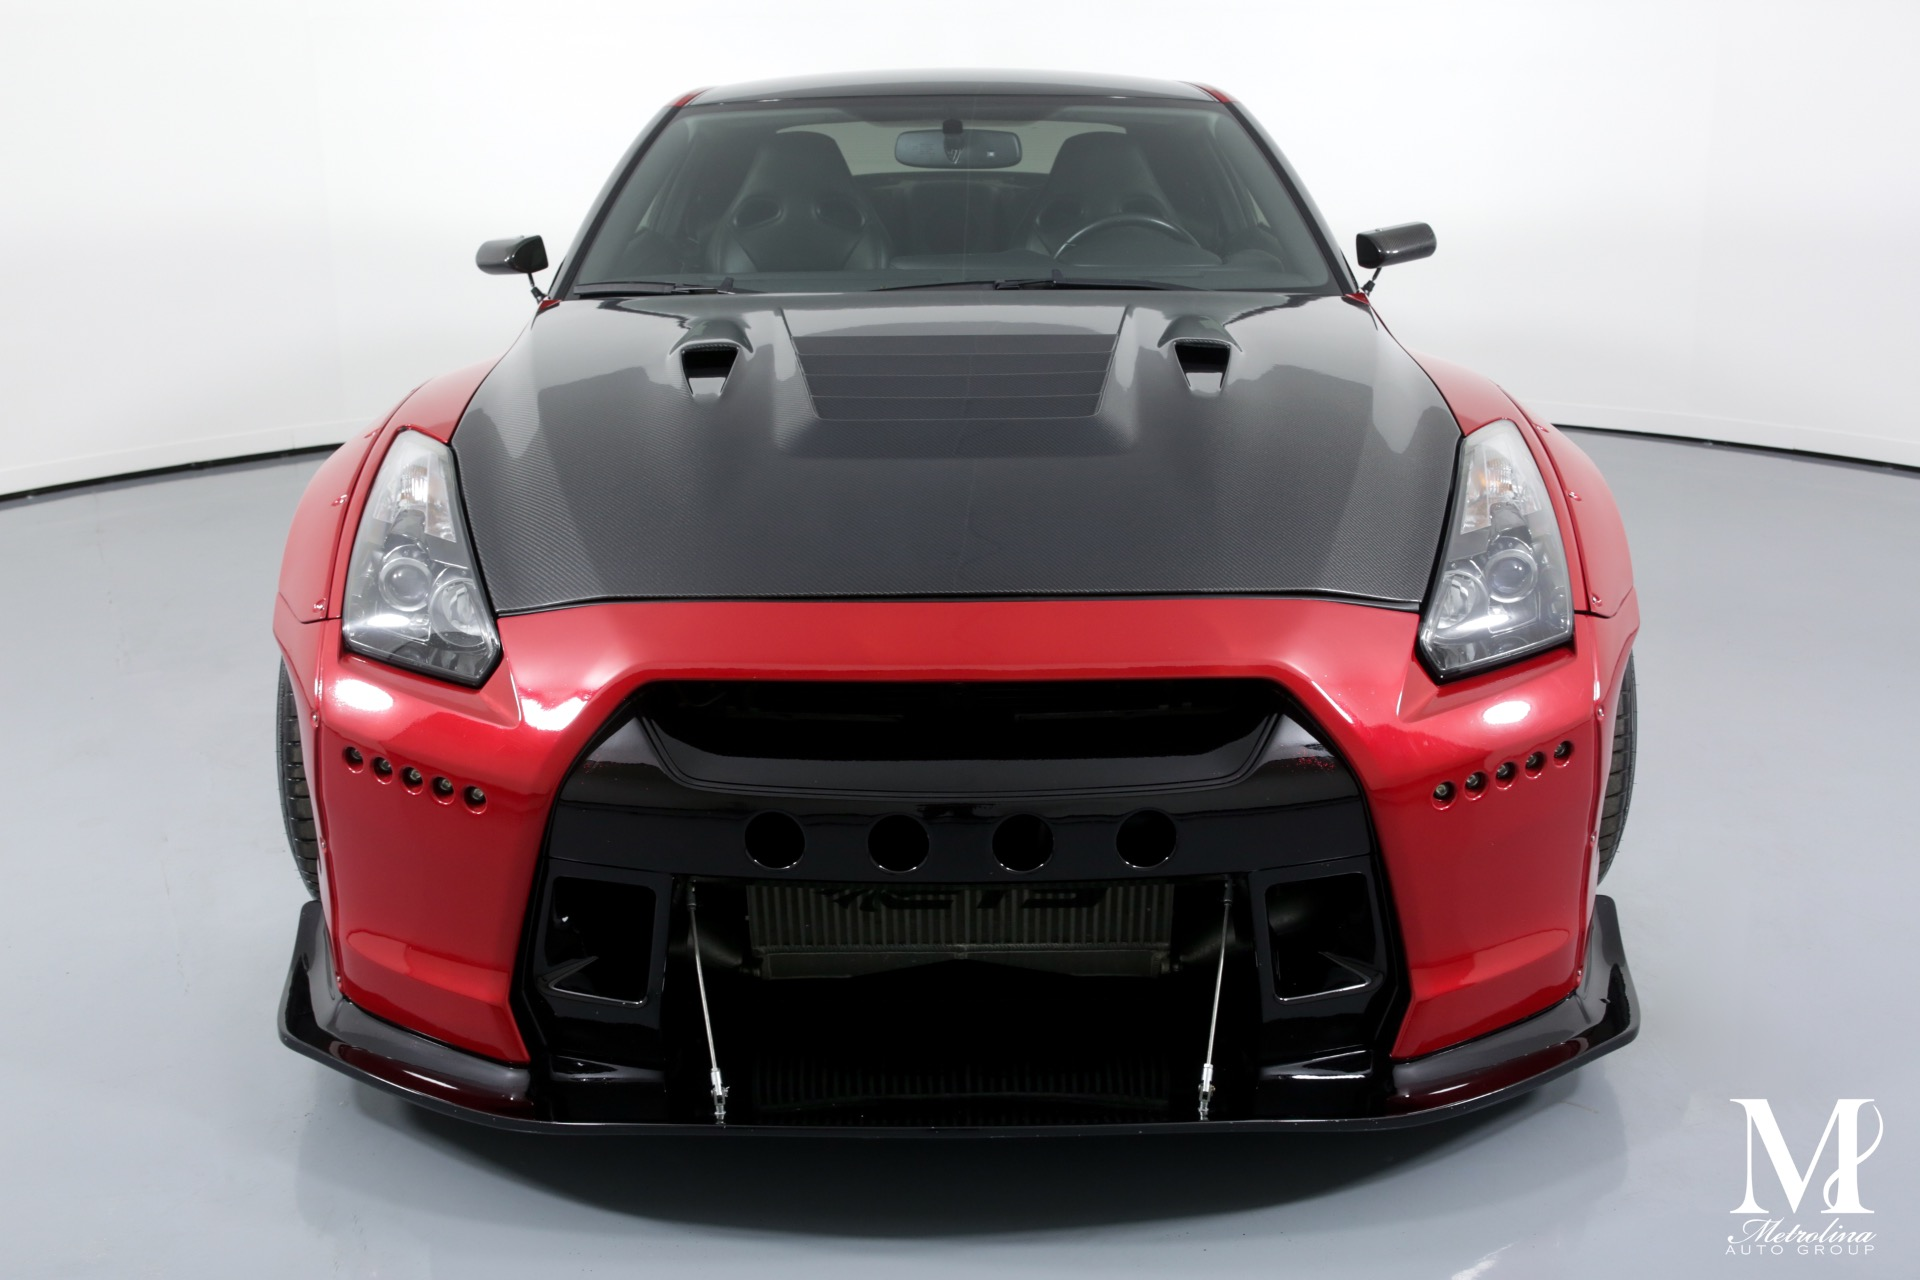 Used 2009 Nissan GT-R Premium for sale $84,996 at Metrolina Auto Group in Charlotte NC 28217 - 3